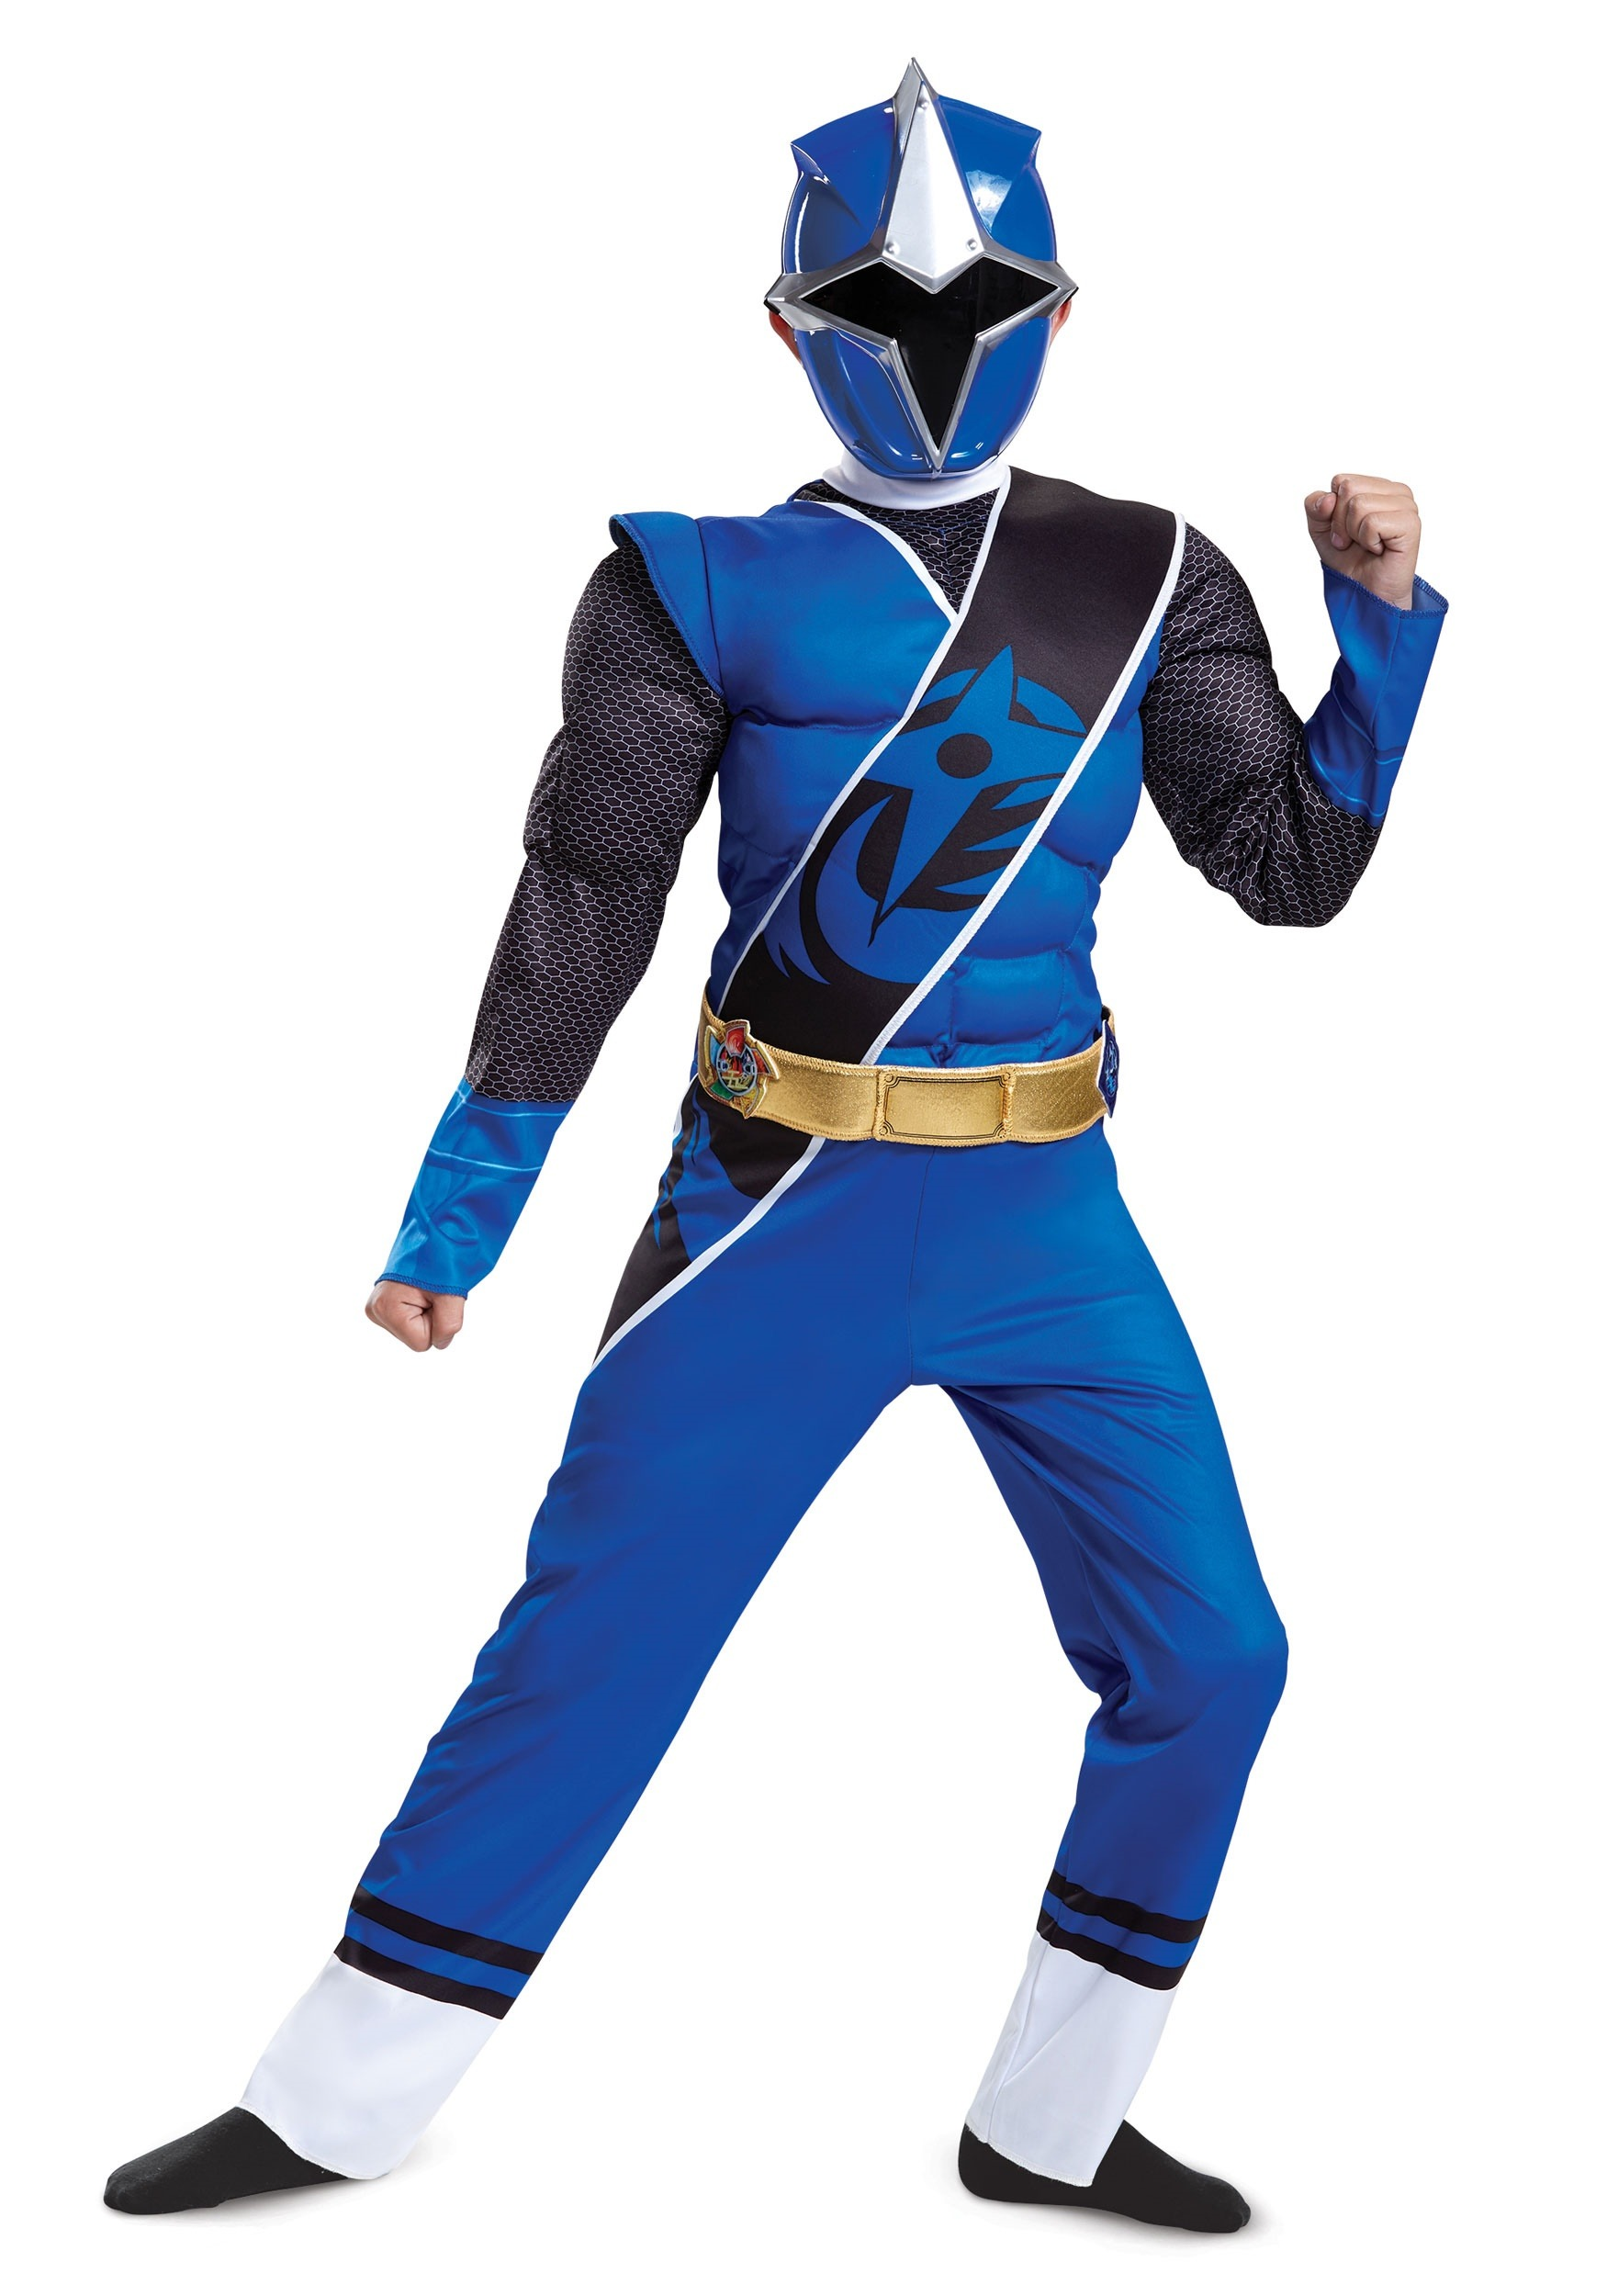 Power Rangers Ninja Steel Blue Ranger Boys Muscle Costume  sc 1 st  Halloween Costumes & Power Rangers Ninja Steel Blue Ranger Muscle Costume for Boys